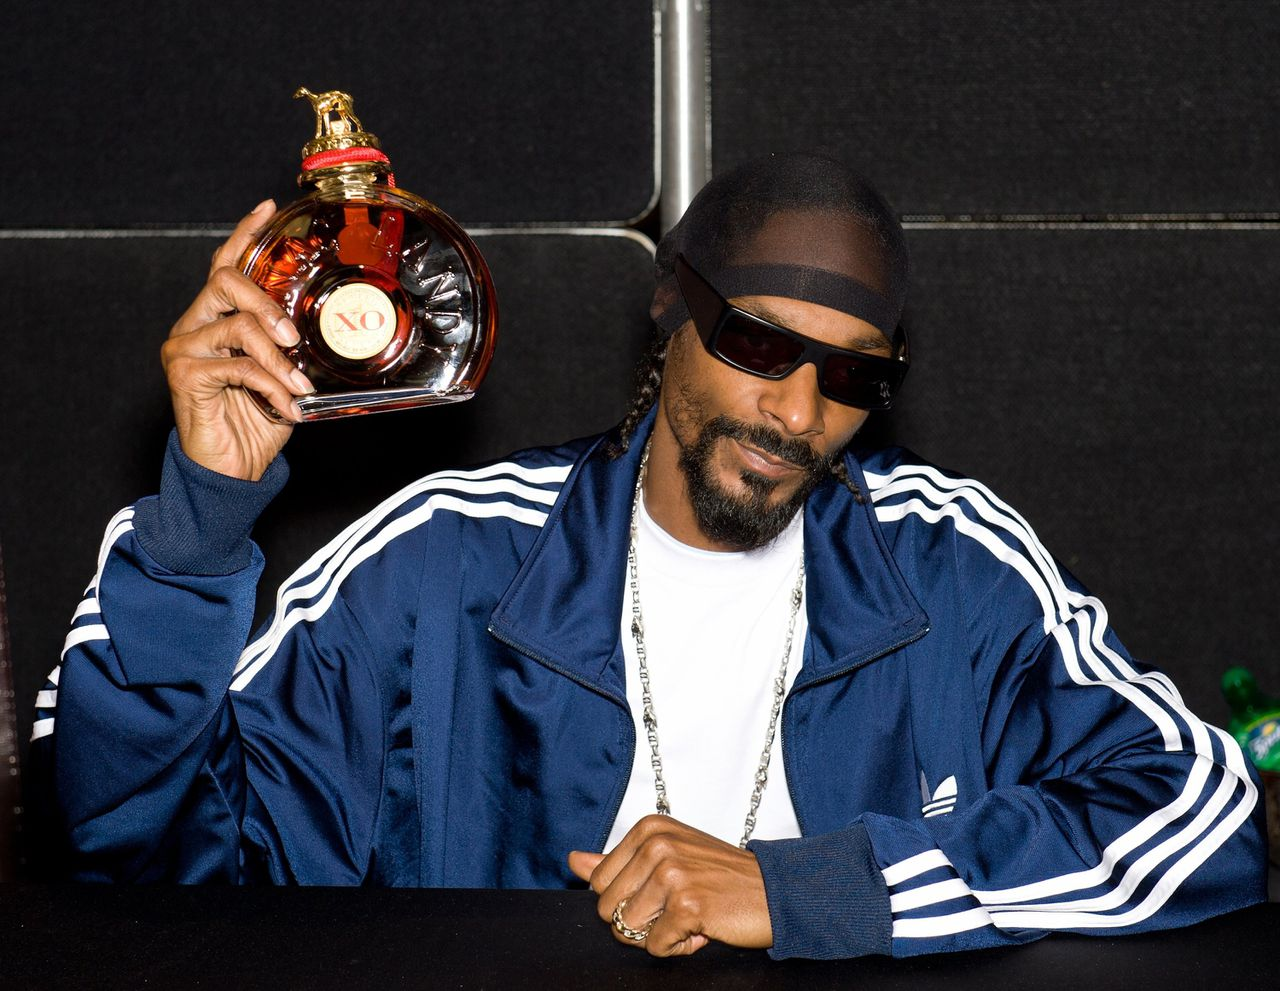 """""""You niggas sippin' on that jealousy, I pour a tall glass of Hennessy, do you wanna have a sip with me?"""", rapt Snoop Dogg in zijn nummer Hennessy N Buddah."""